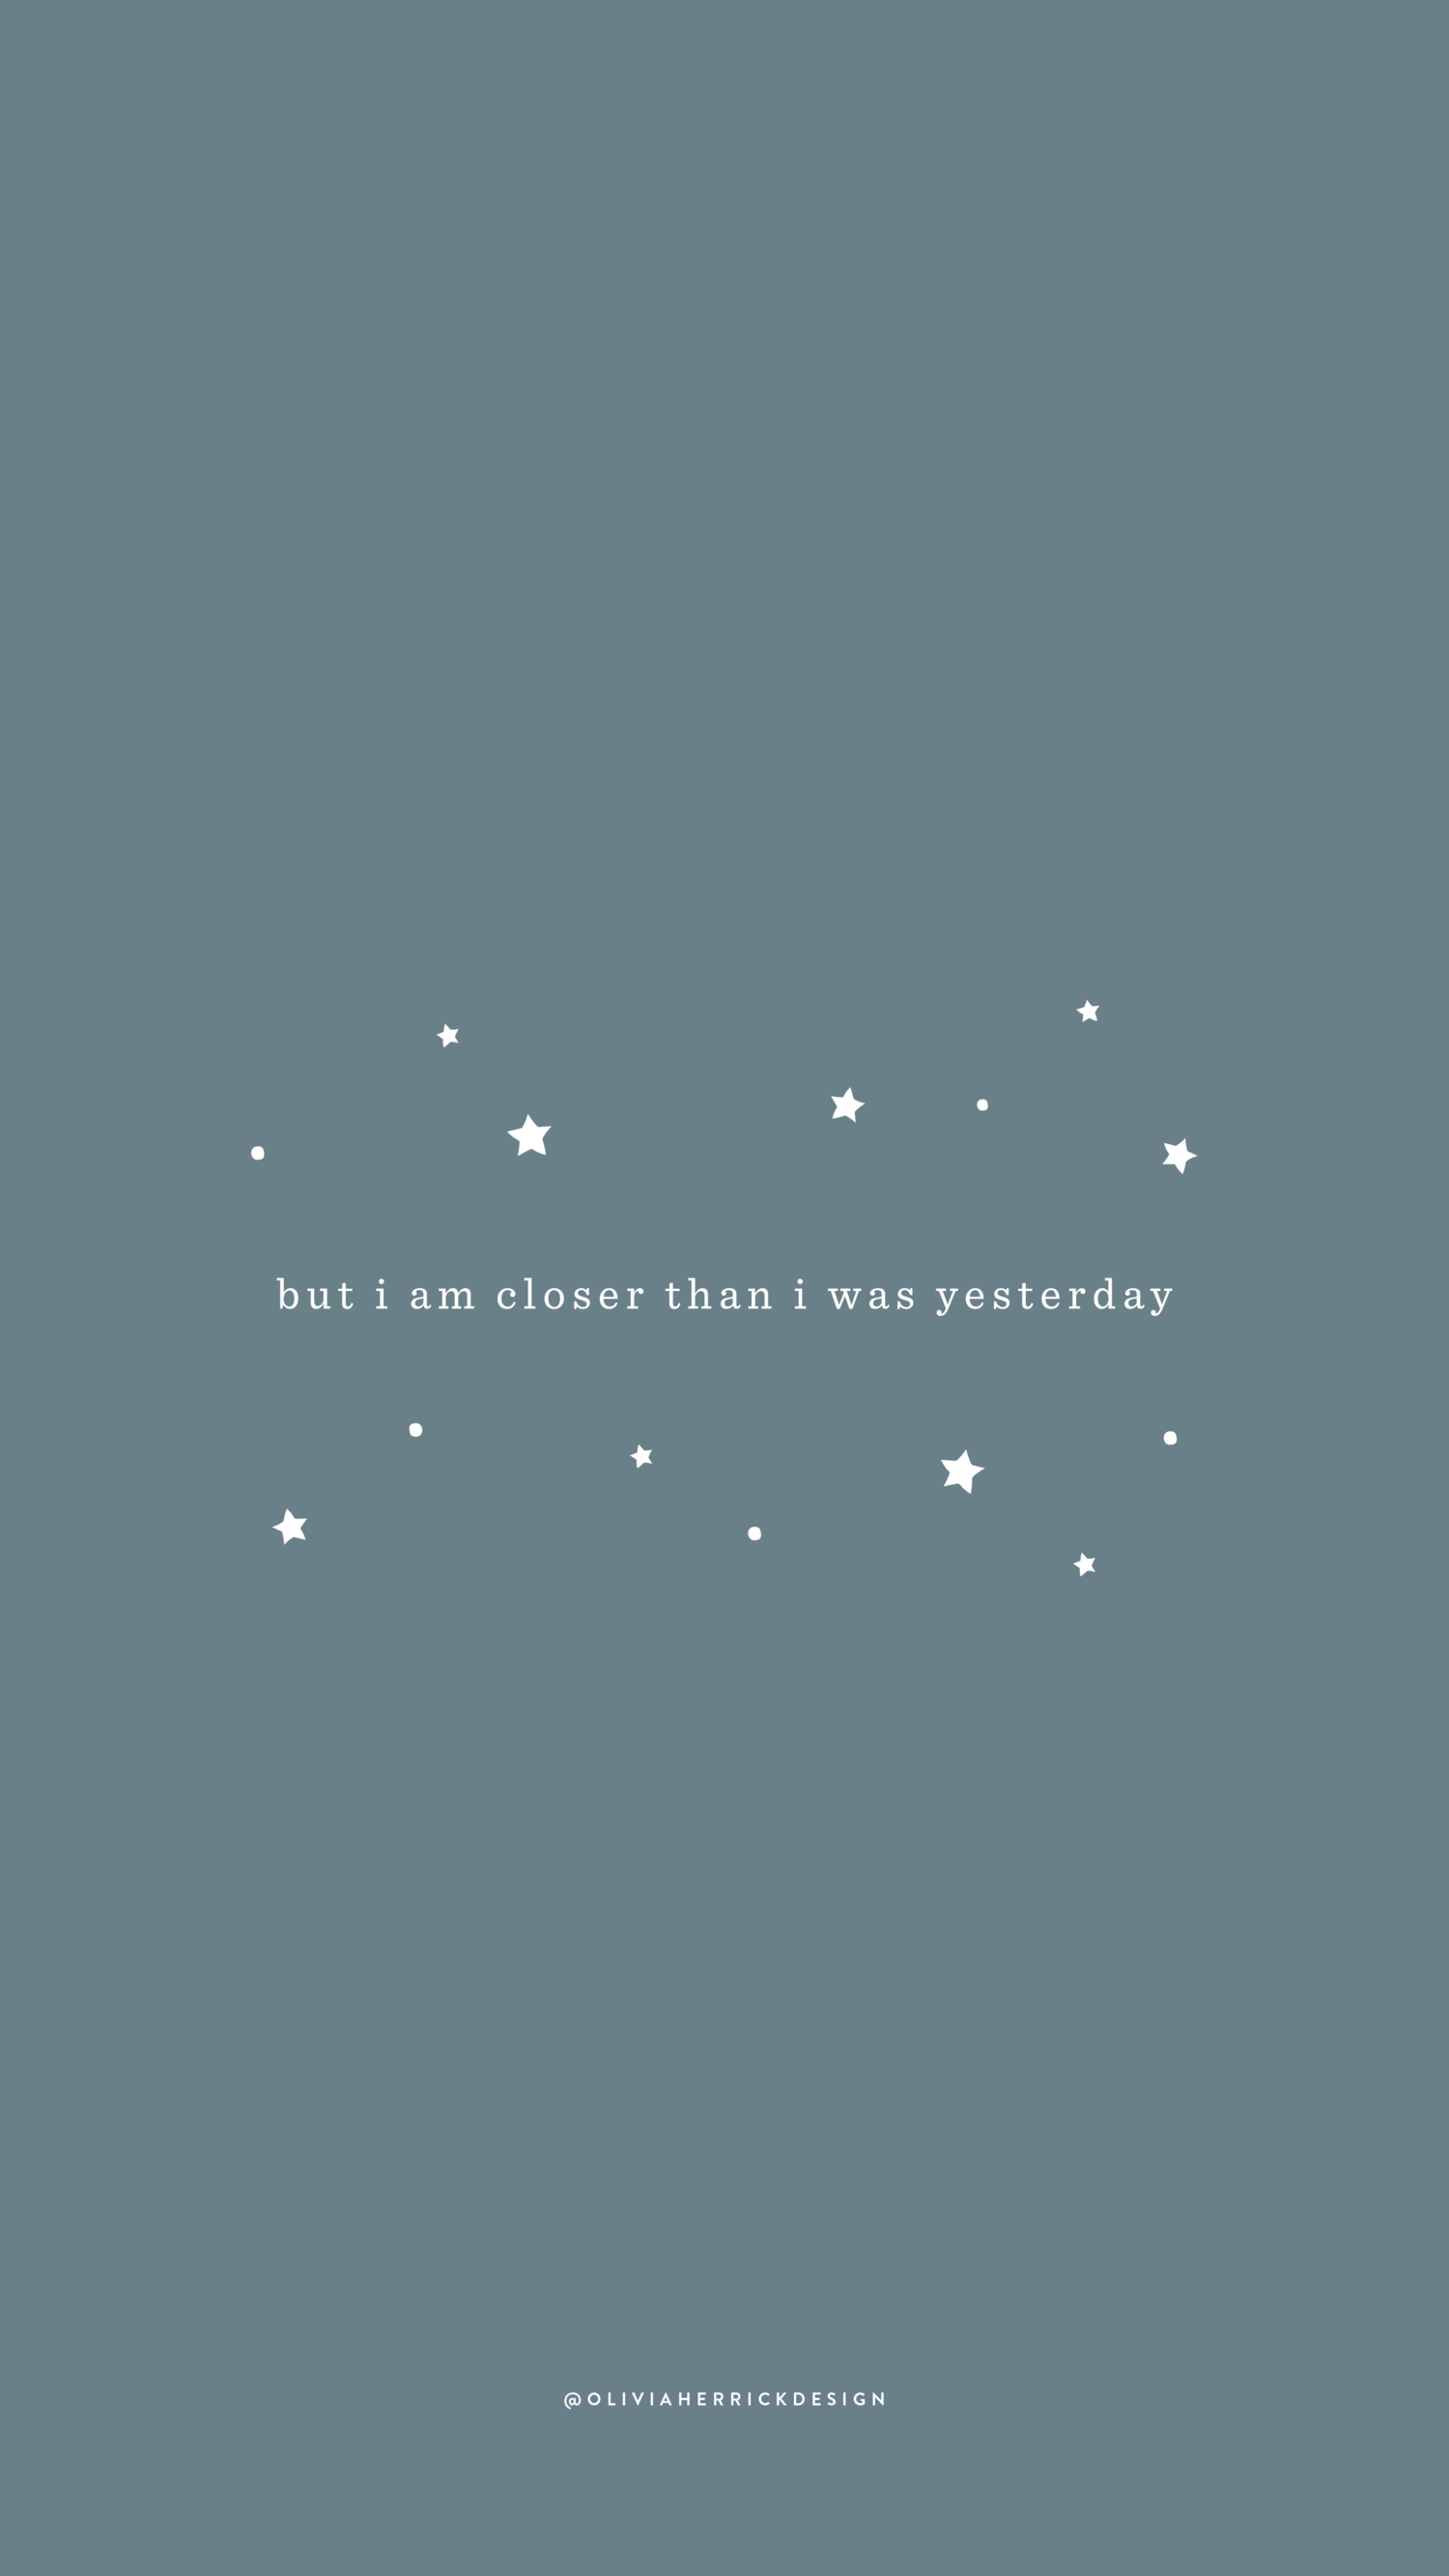 Free Phone Wallpaper Closer Than I Was Yesterday Love Quotes Wallpaper Free Phone Wallpaper Motivational Quotes Wallpaper